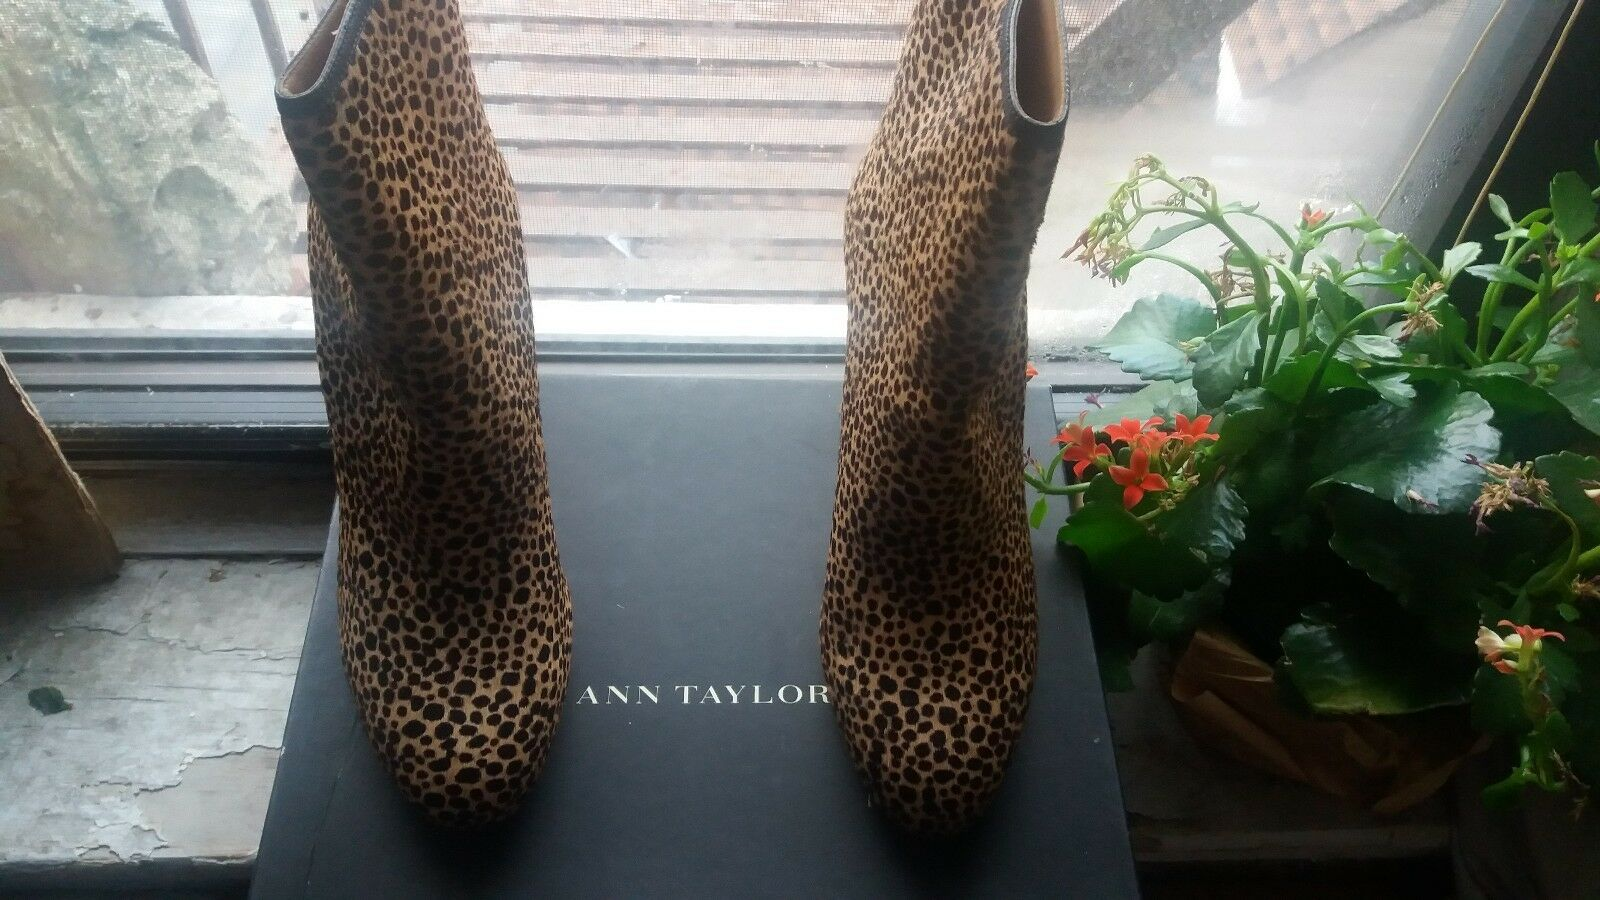 Ann Taylor NADIA cheetah print Ankle Boots $278 NEW size 8.5 SUPER RARE VHTF